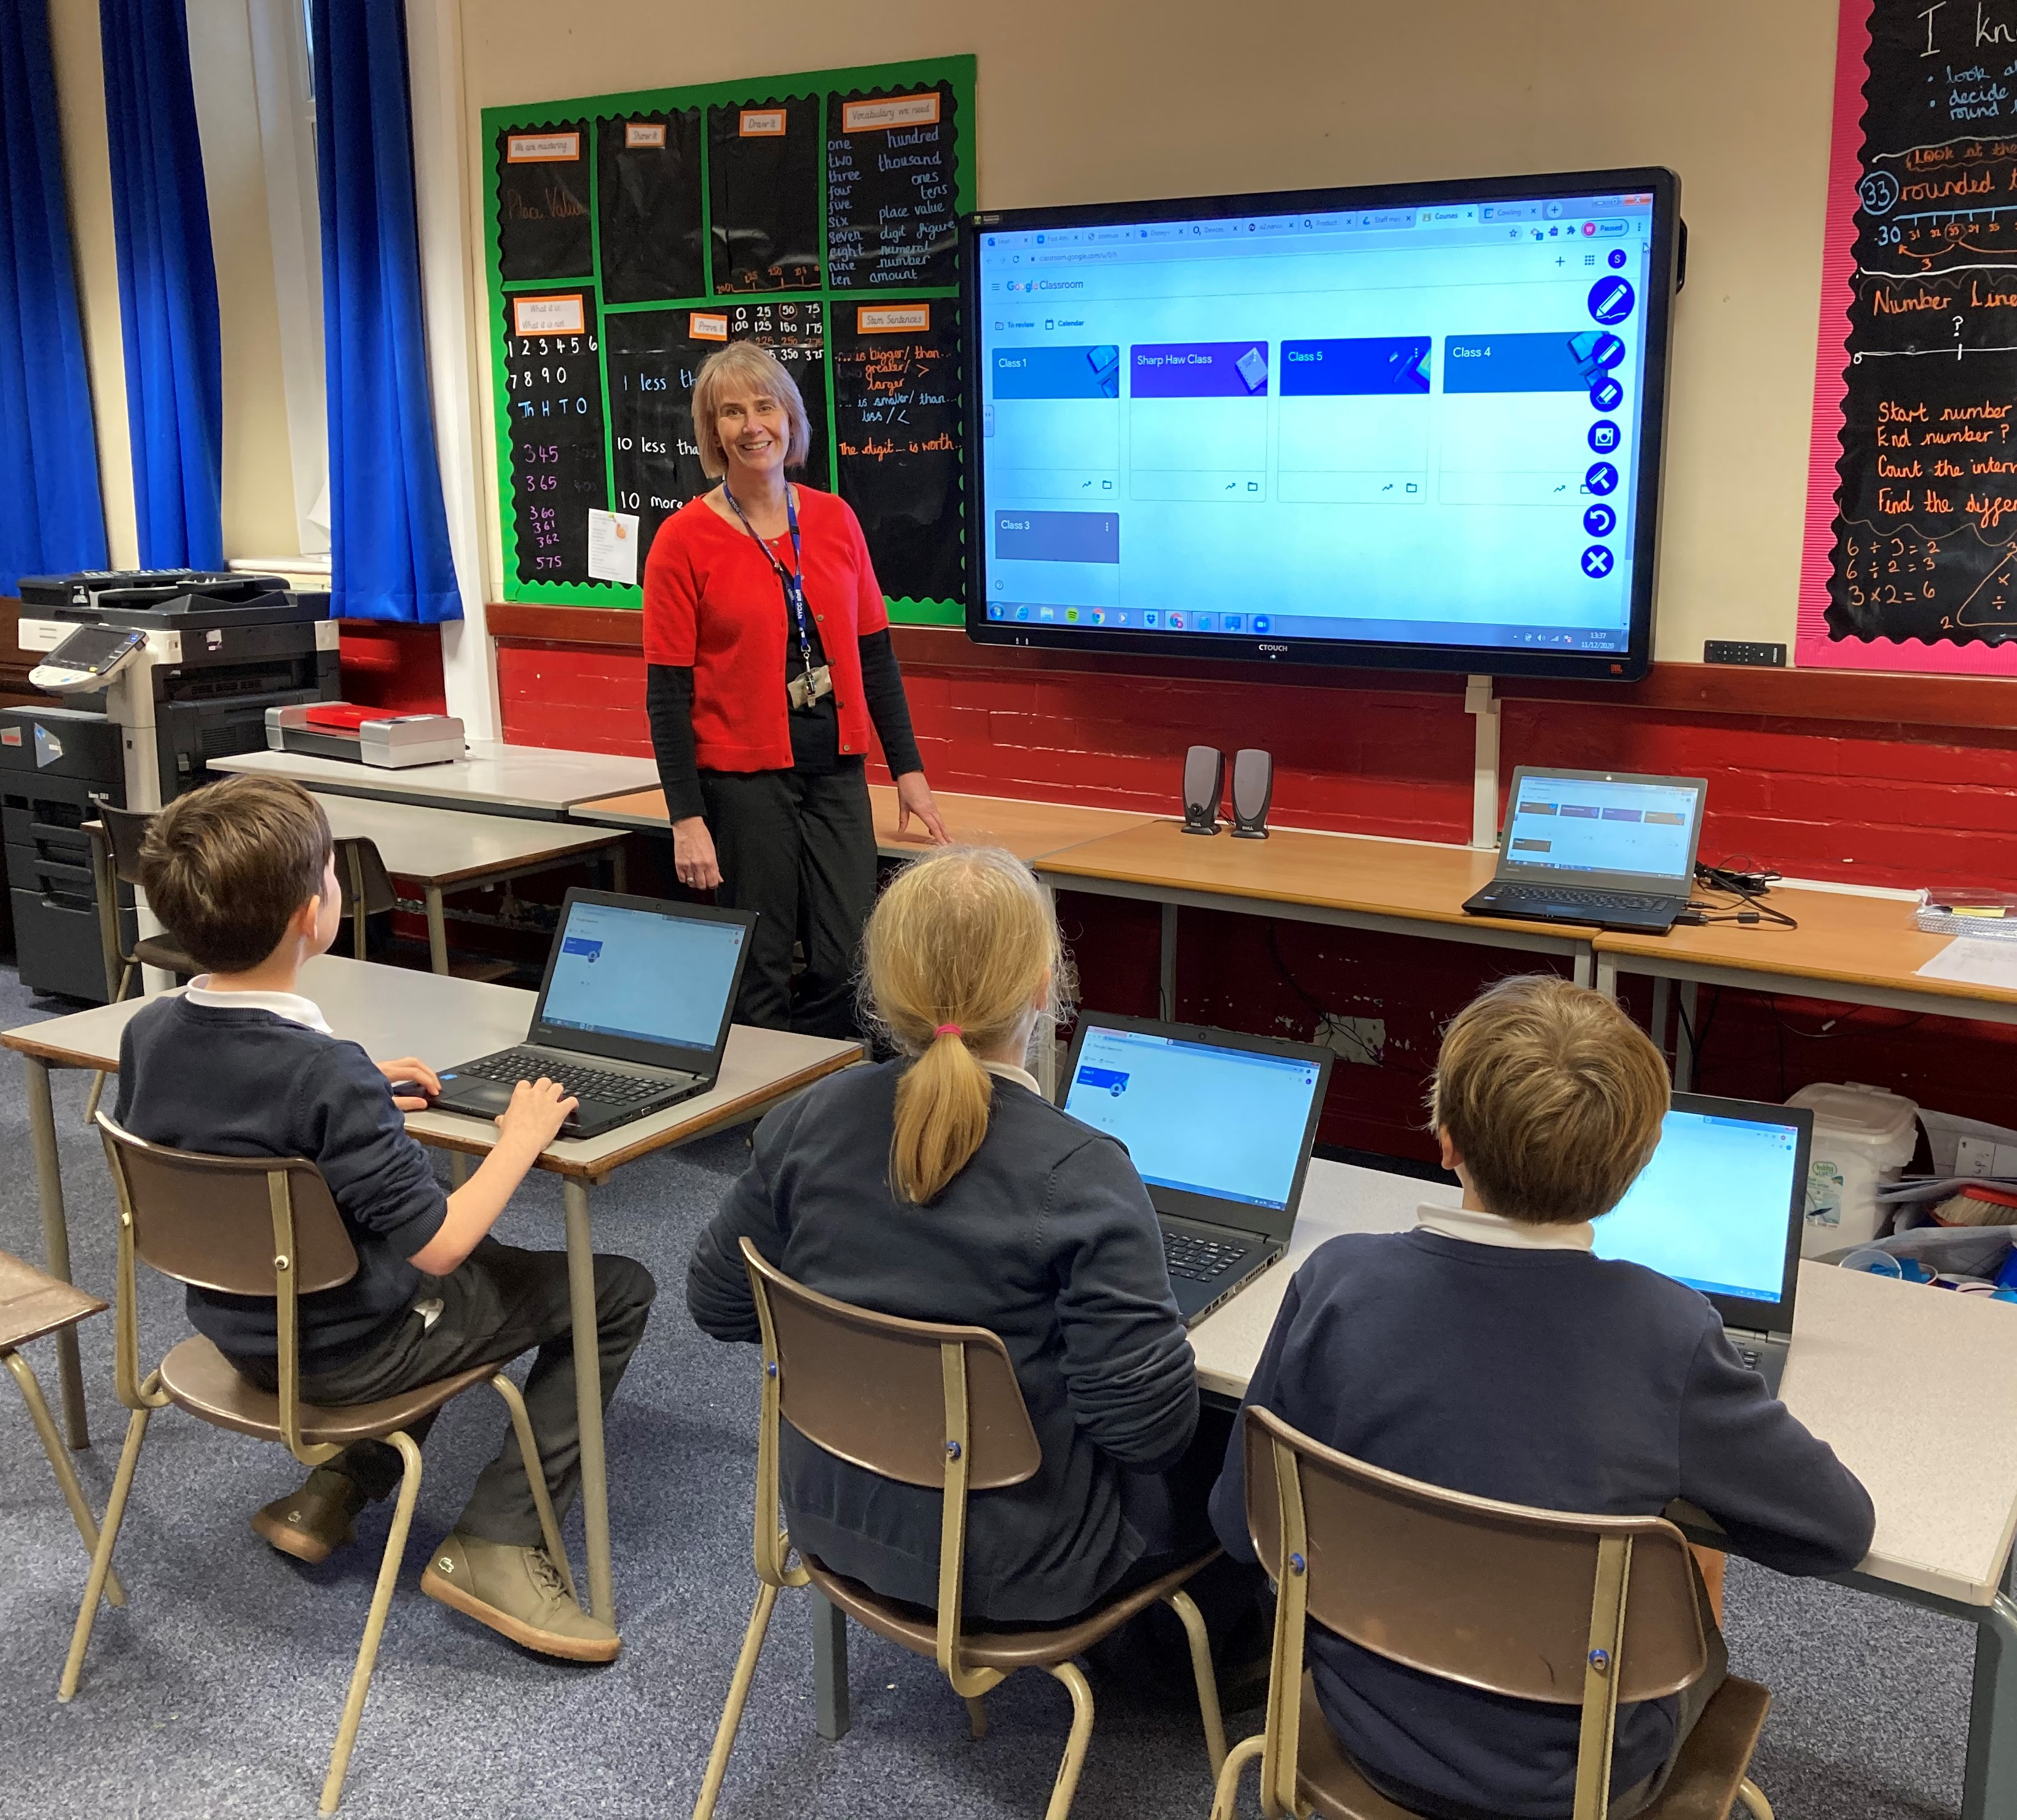 A teacher at the front of a classroom smiles at the camera, three primary pupils sit at desks with laptops